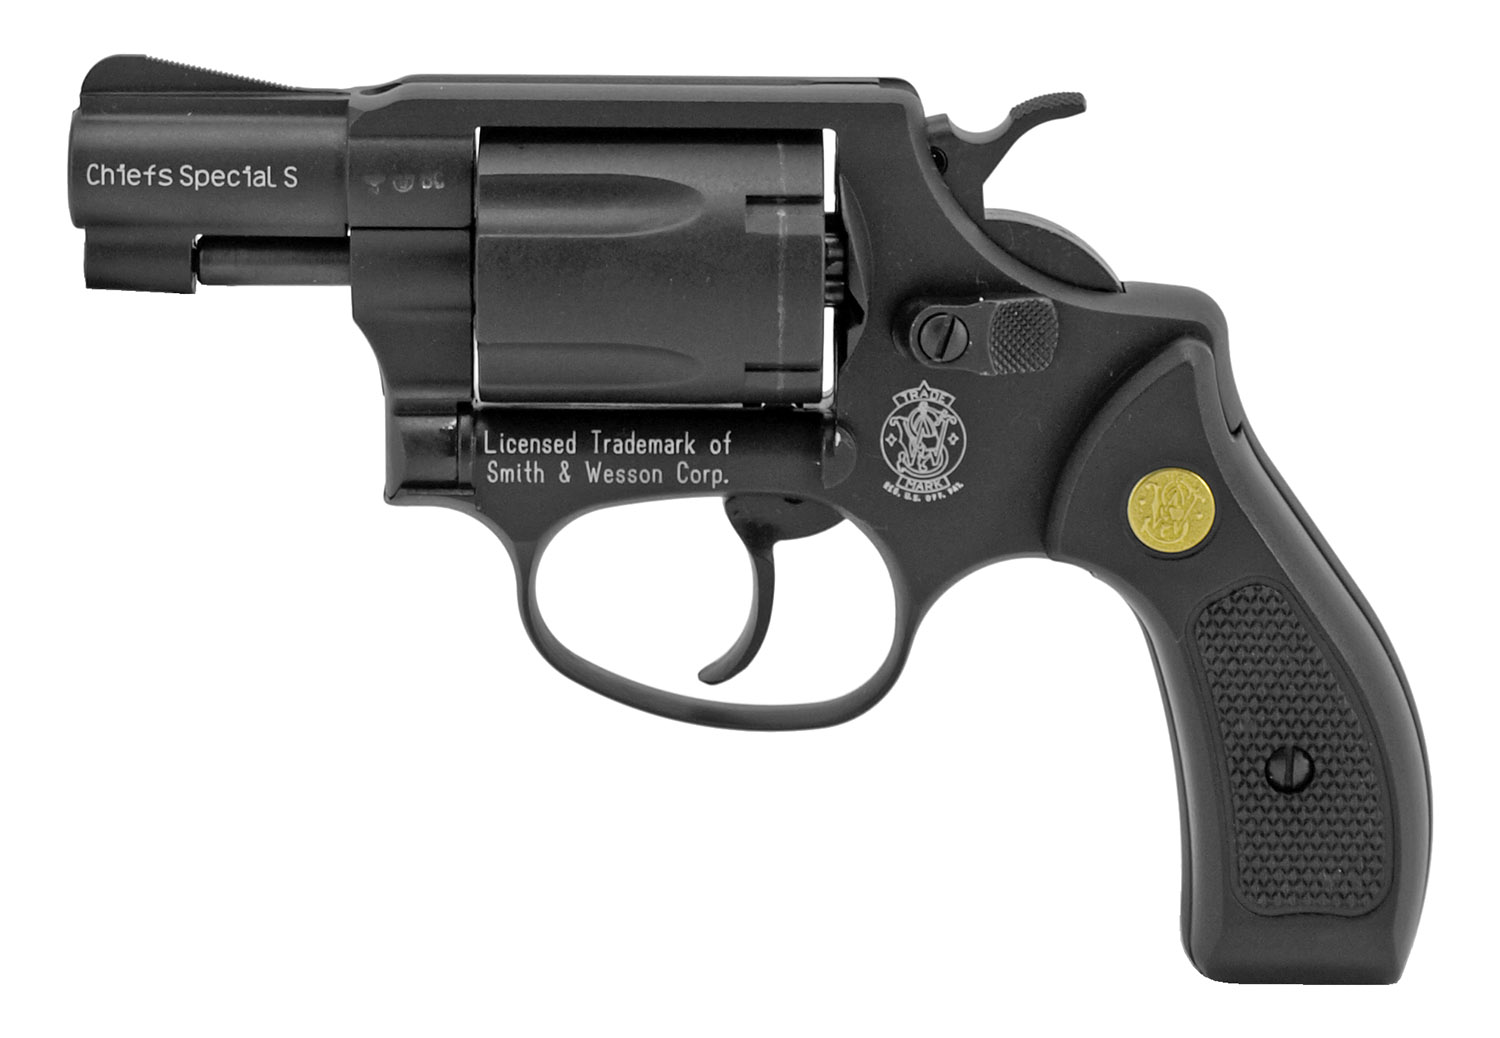 Starter Pistol Smith & Wesson Chiefs Special S Revolver